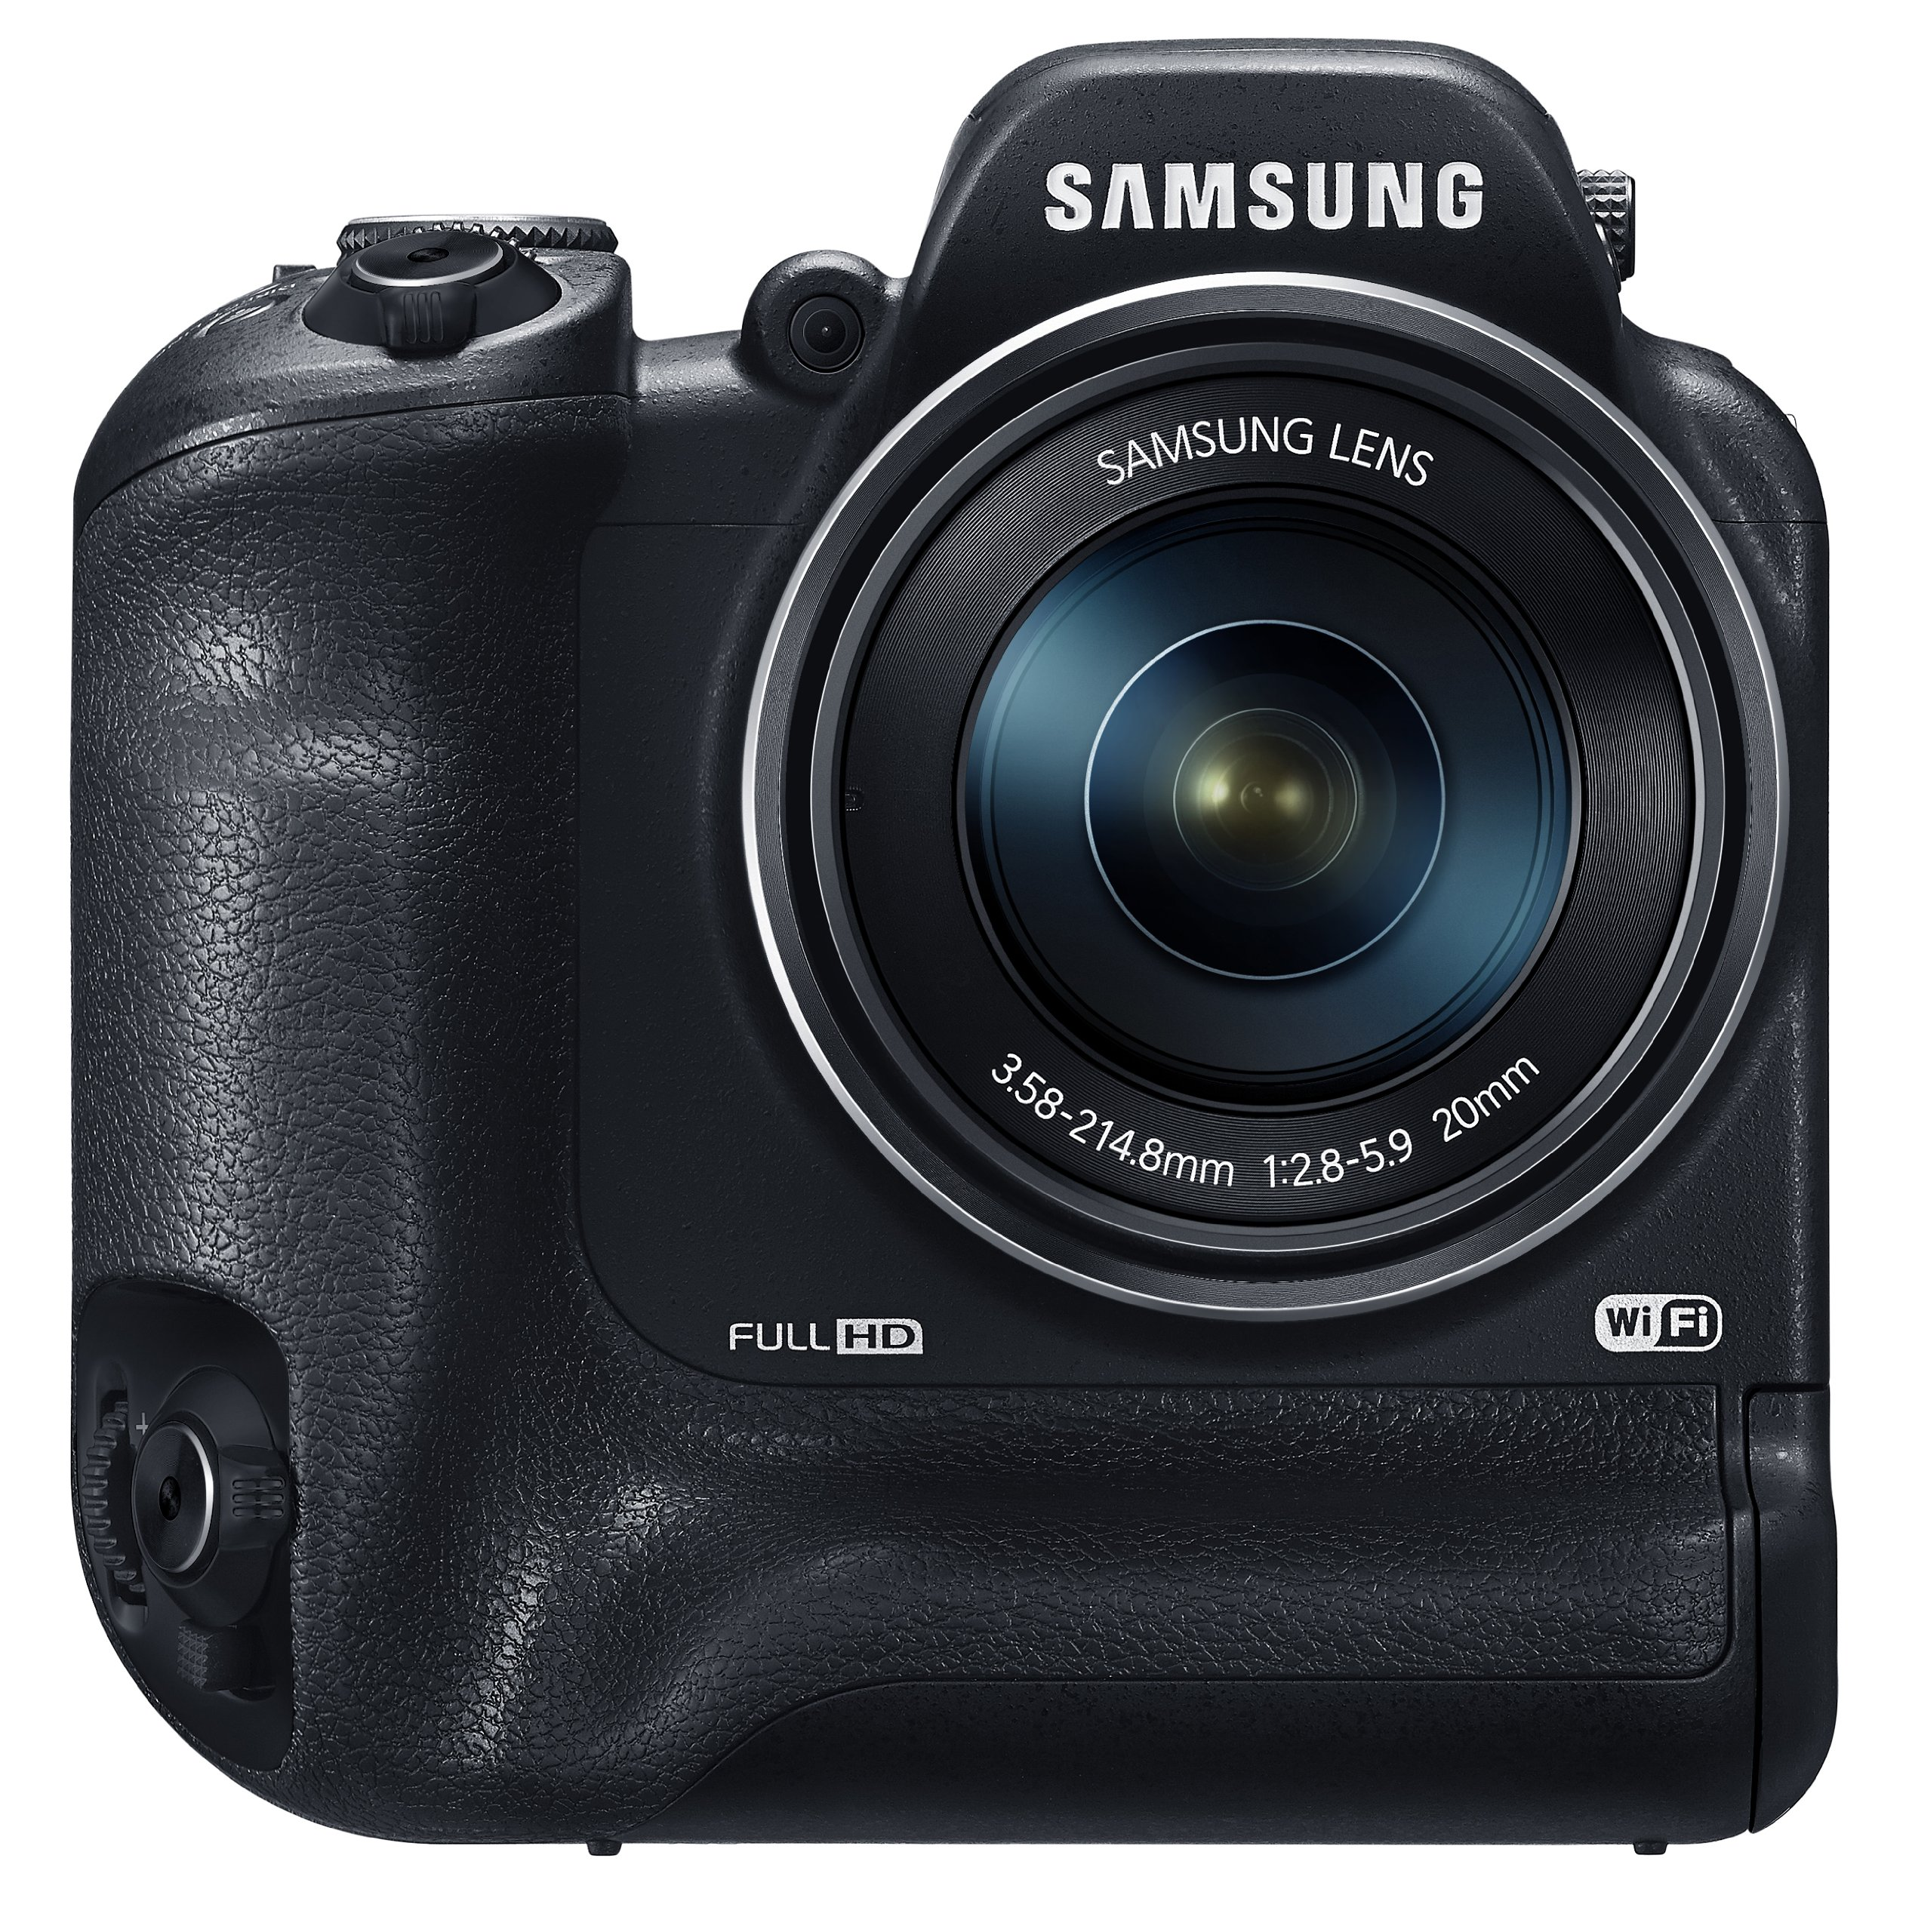 Samsung WB2200F 16.3MP CMOS Smart WiFi & NFC Digital Camera with 60x Optical  Zoom, 3.0'' LCD and 1080p HD Video (Black) by Samsung (Image #3)